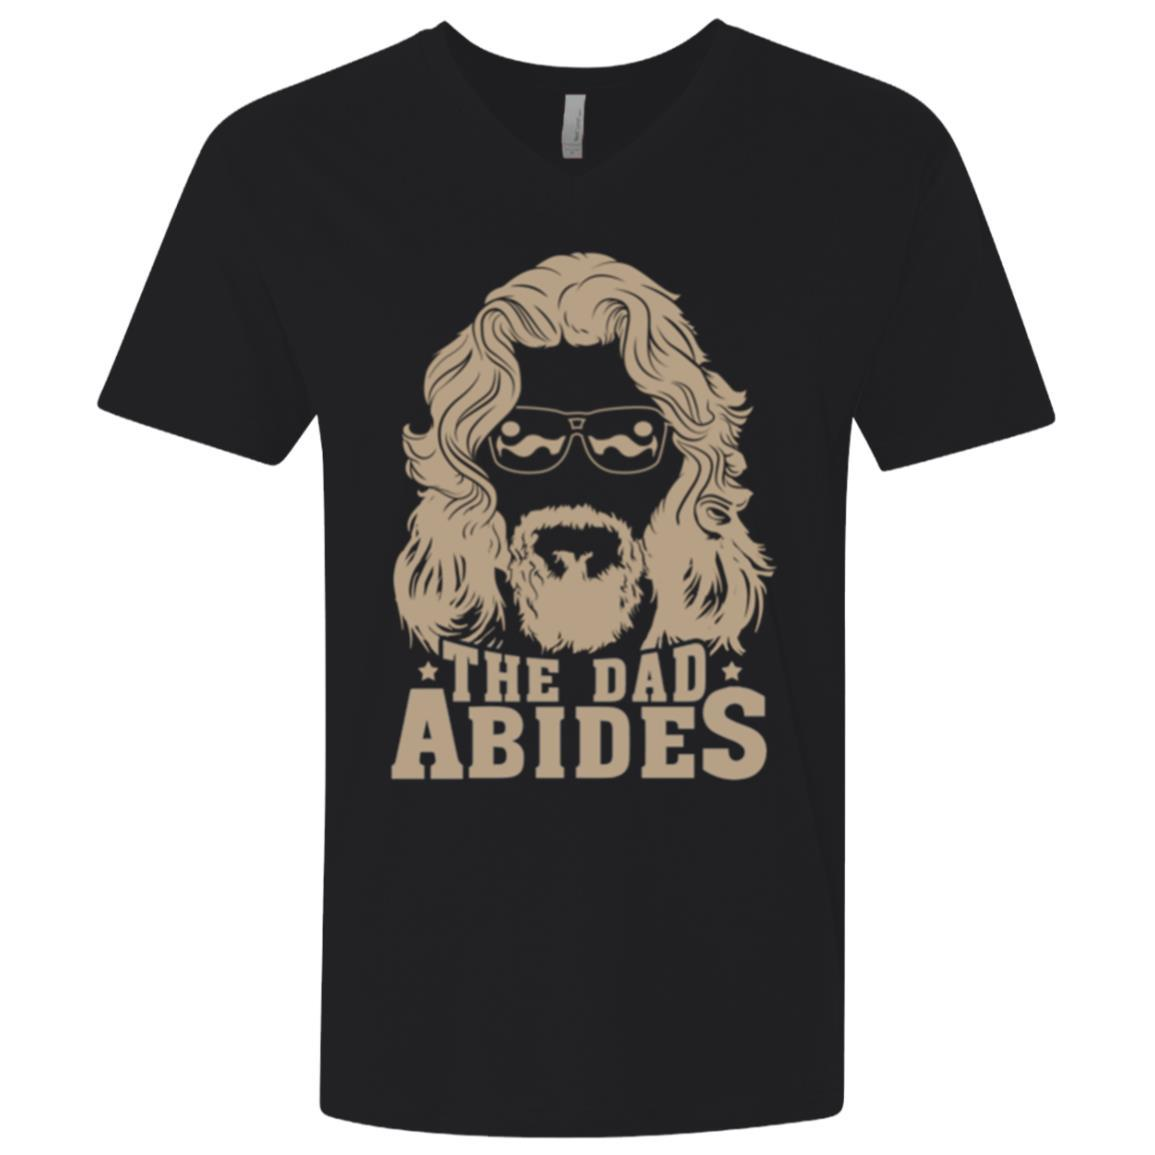 The Dad Abides Premium V-Neck